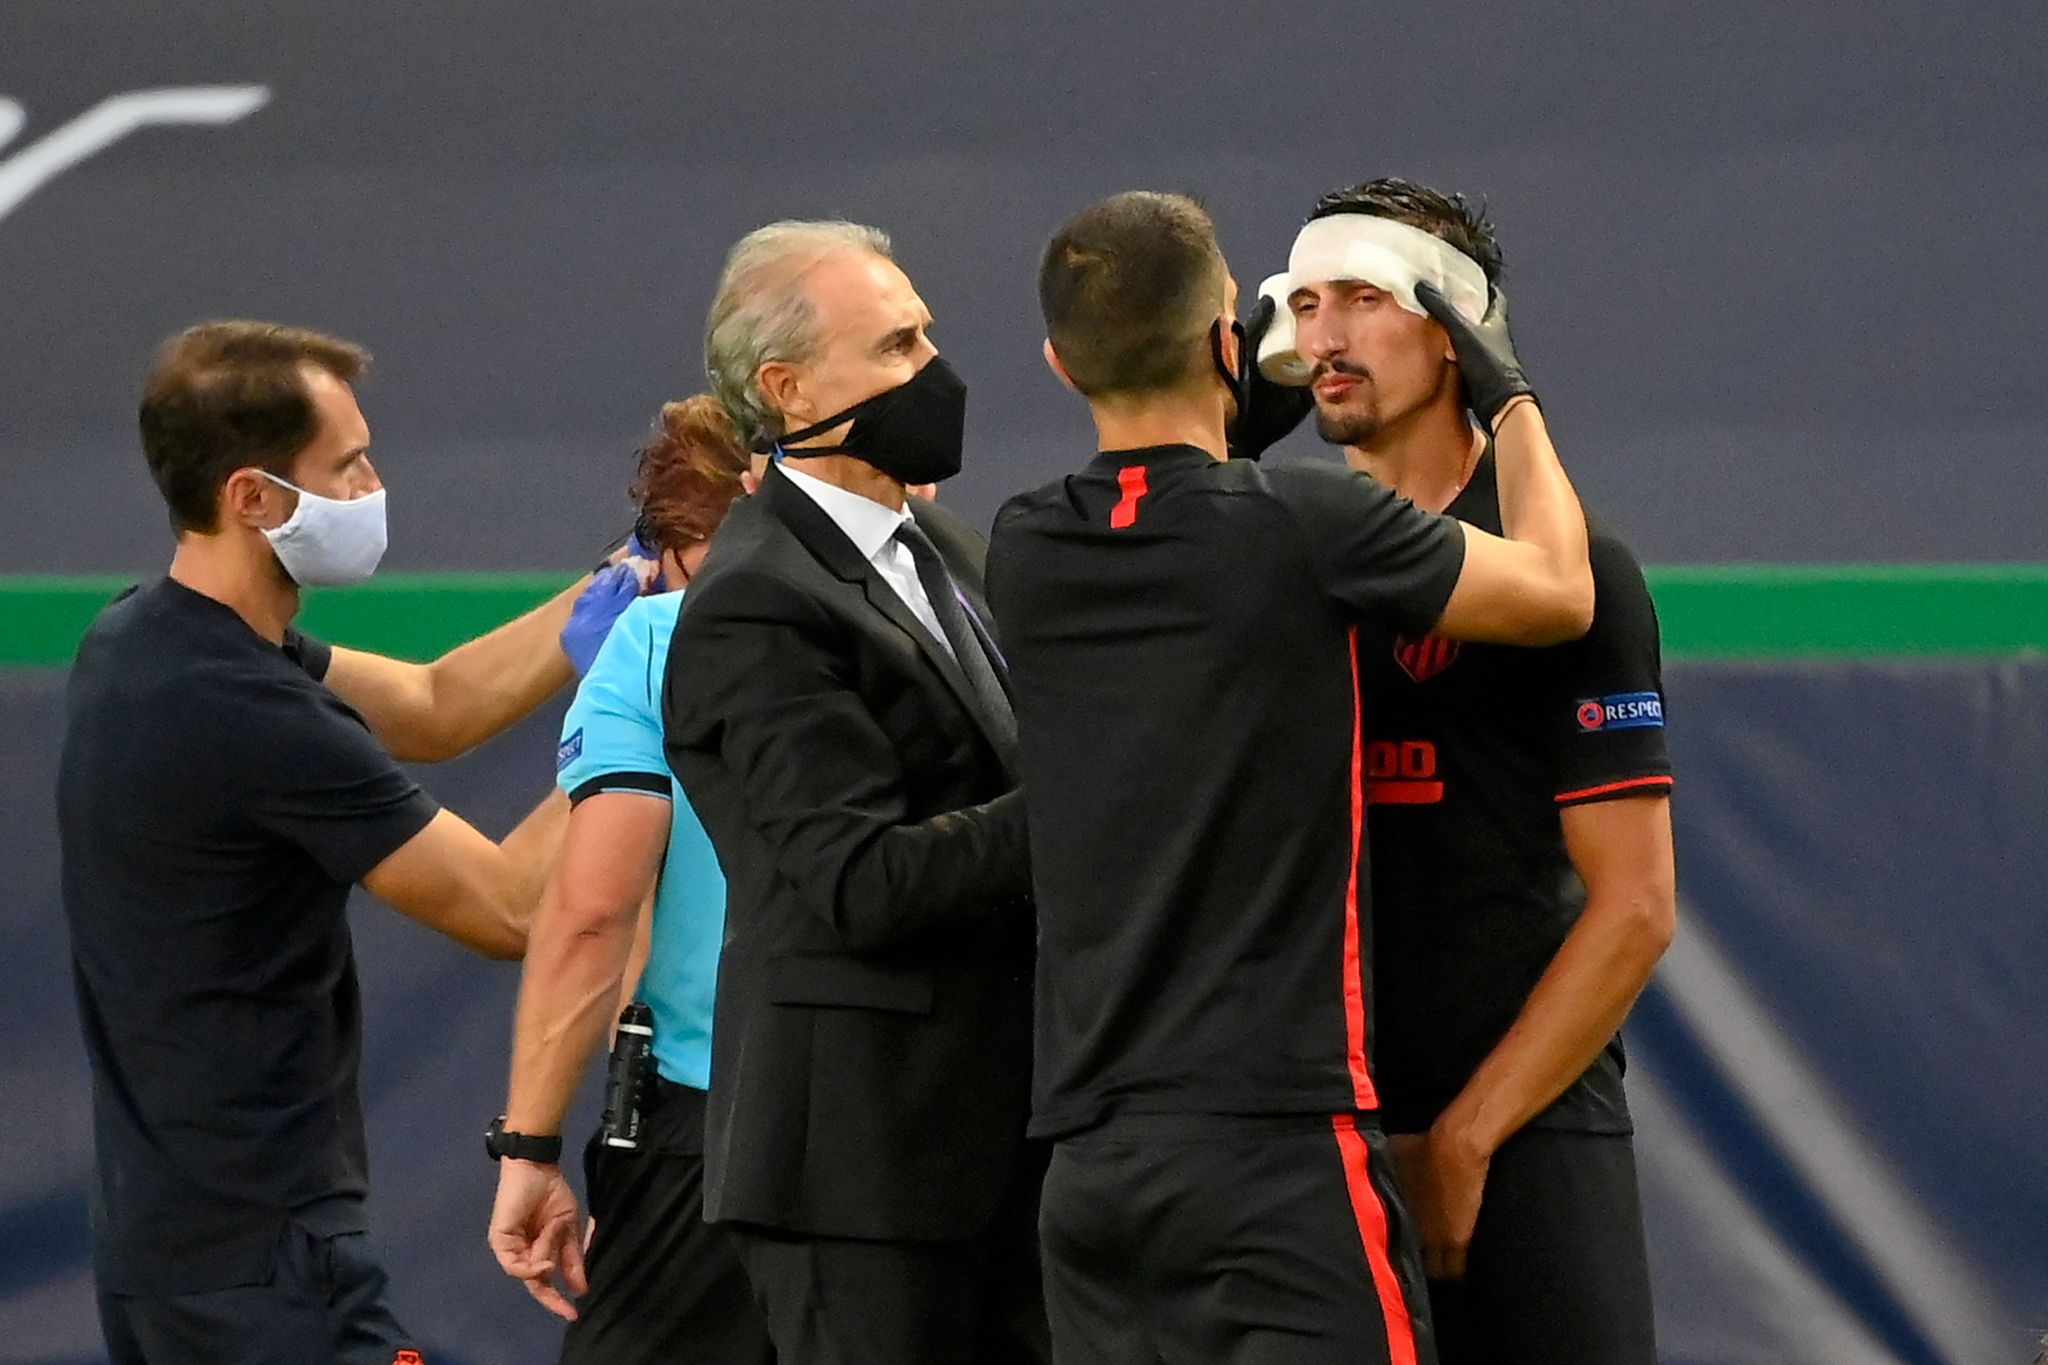 Atletico Madrids Montenegrin defender Stefan lt;HIT gt;Savic lt;/HIT gt; is attended after resulting injured during the UEFA Champions League quarter-final football match between Leipzig and Atletico Madrid at the Jose Alvalade stadium in Lisbon on August 13, 2020. (Photo by LLUIS GENE / POOL / AFP)